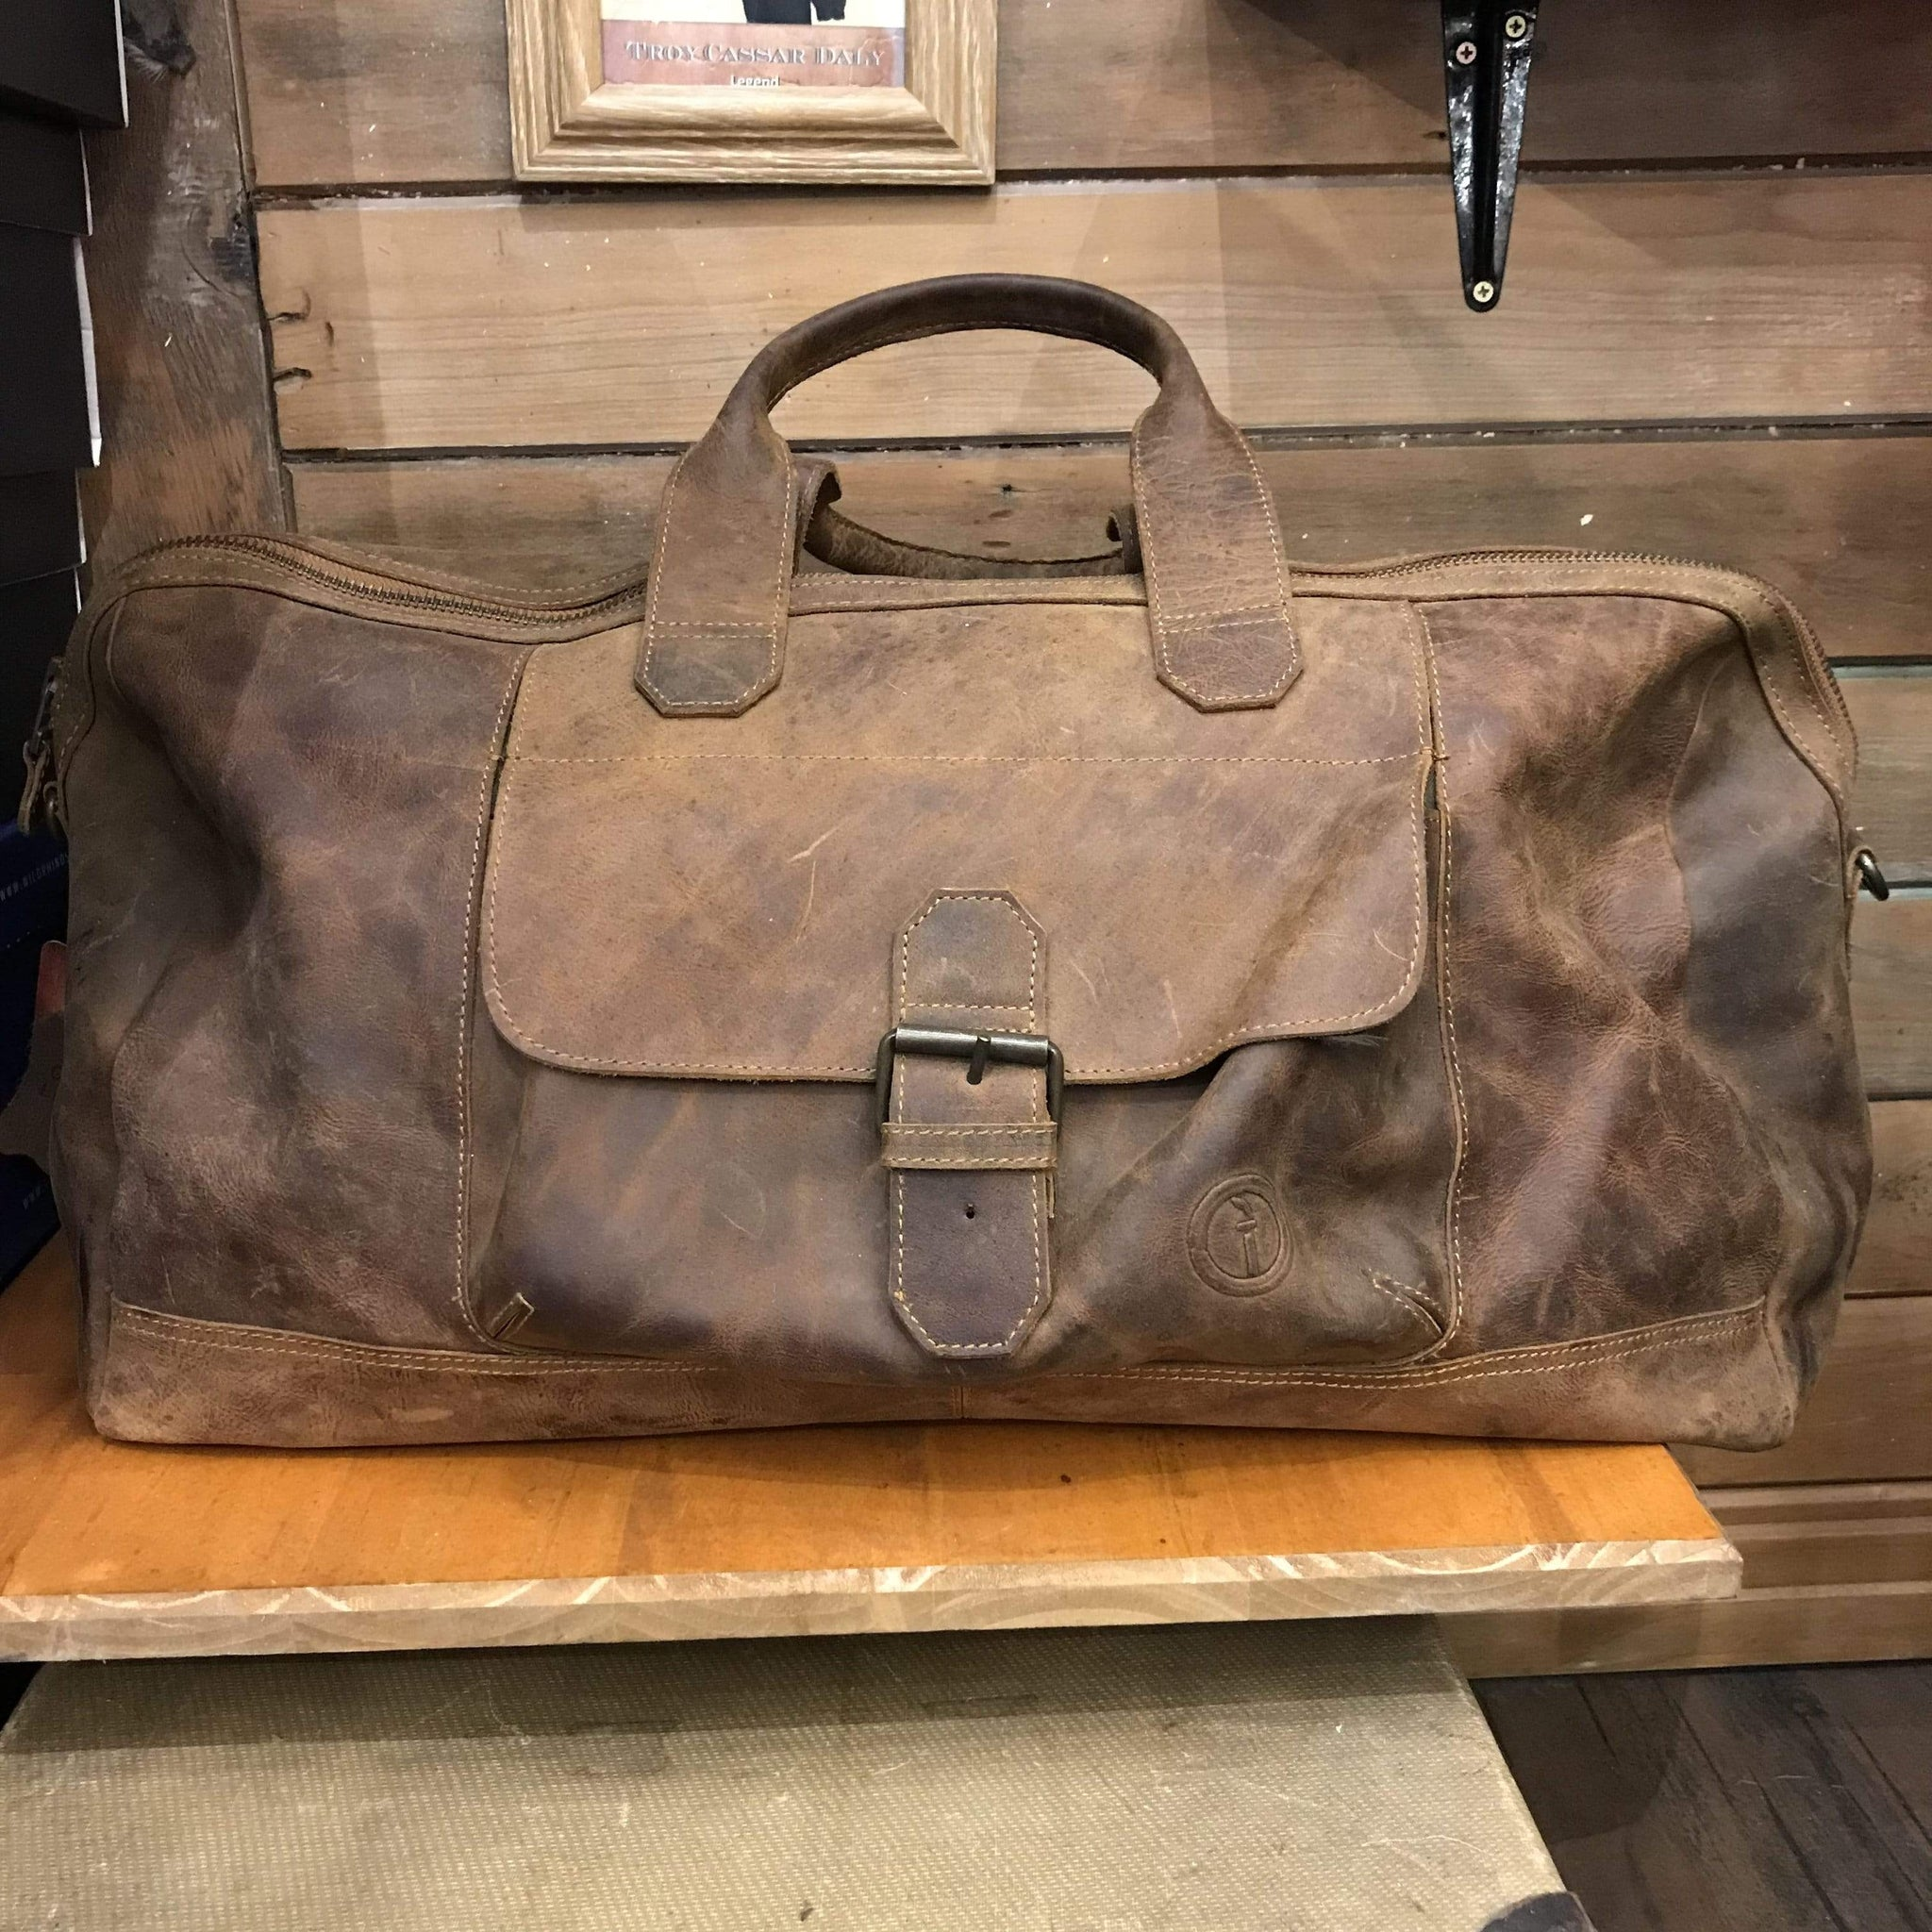 Indepal Leather BAGS Crazy Horse Tan Phileas Leather Duffle 22""